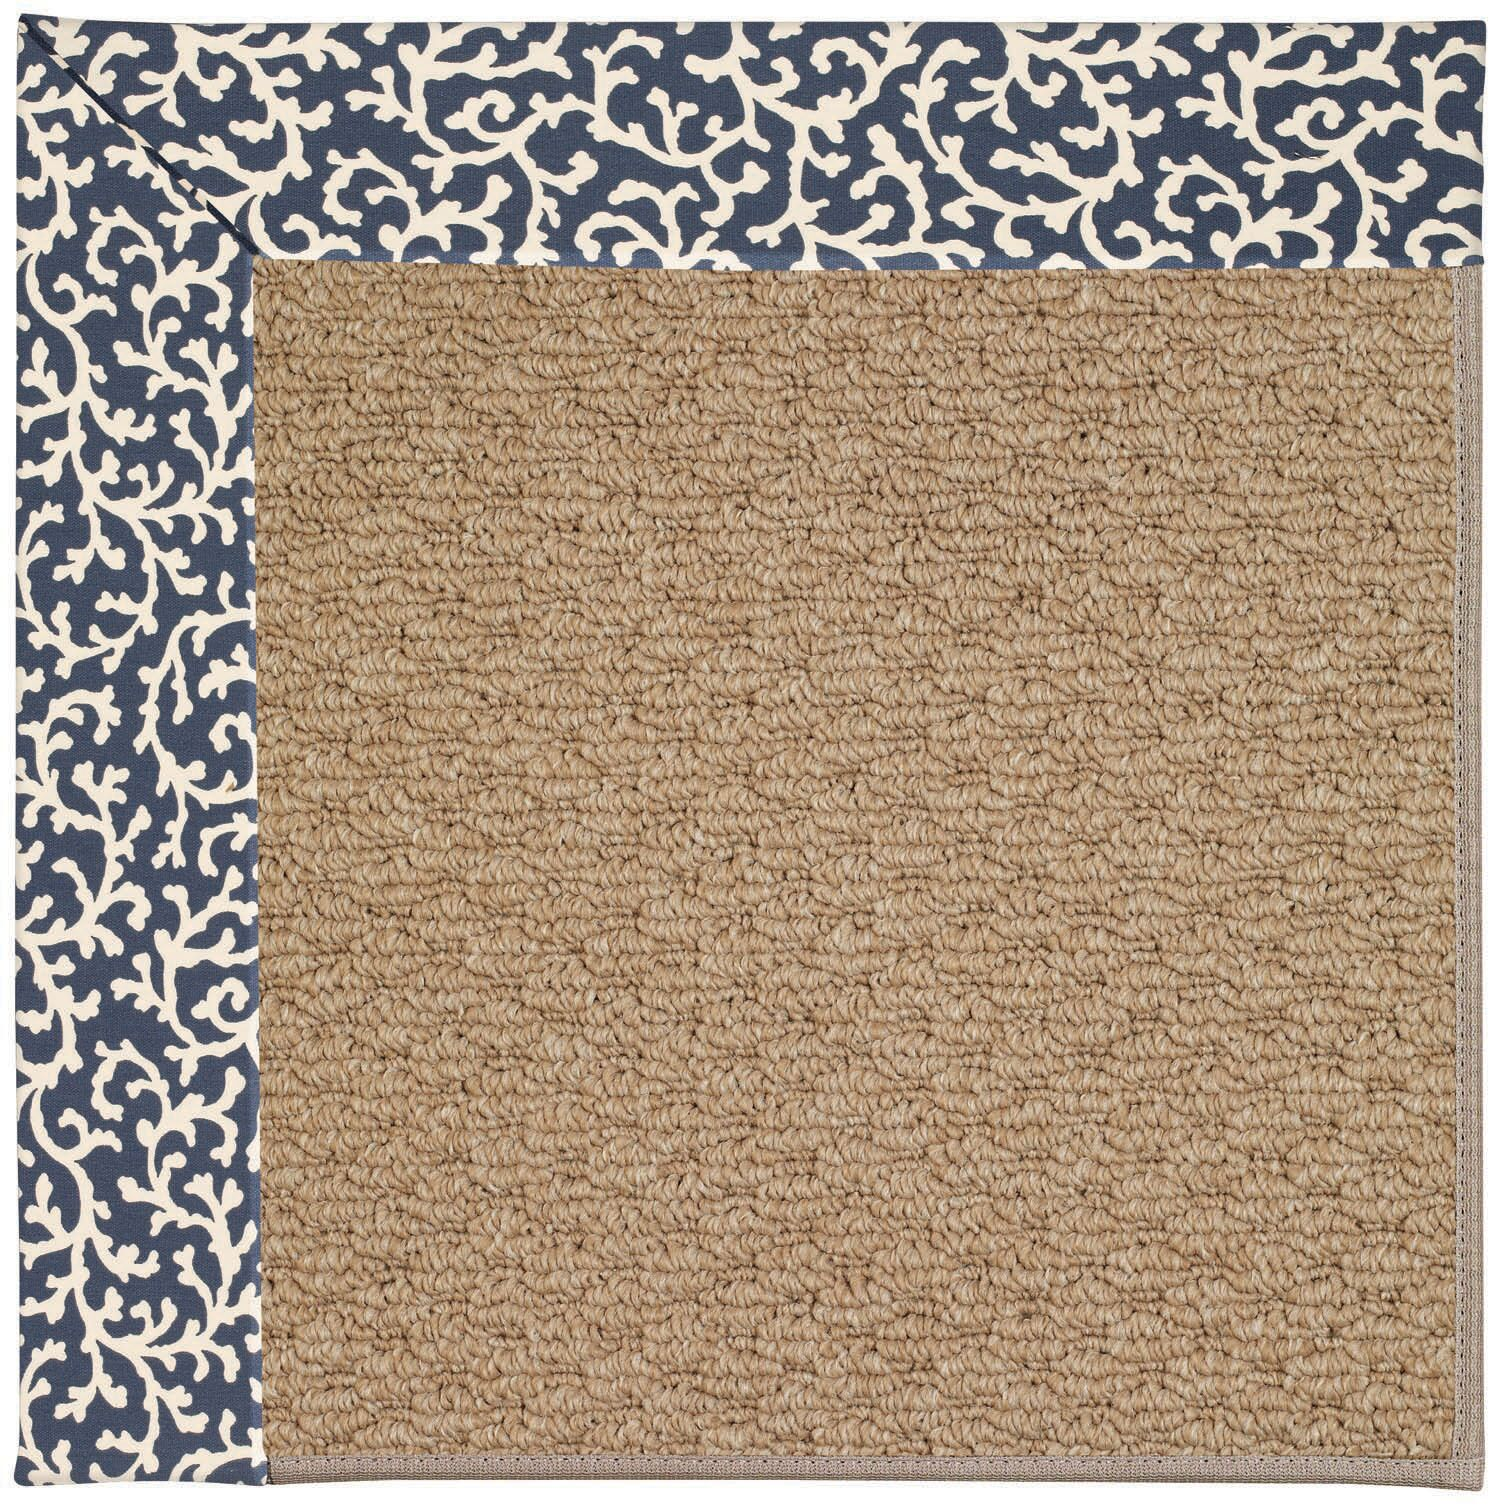 Lisle Machine Tufted Midnight/Brown Indoor/Outdoor Area Rug Rug Size: Square 8'